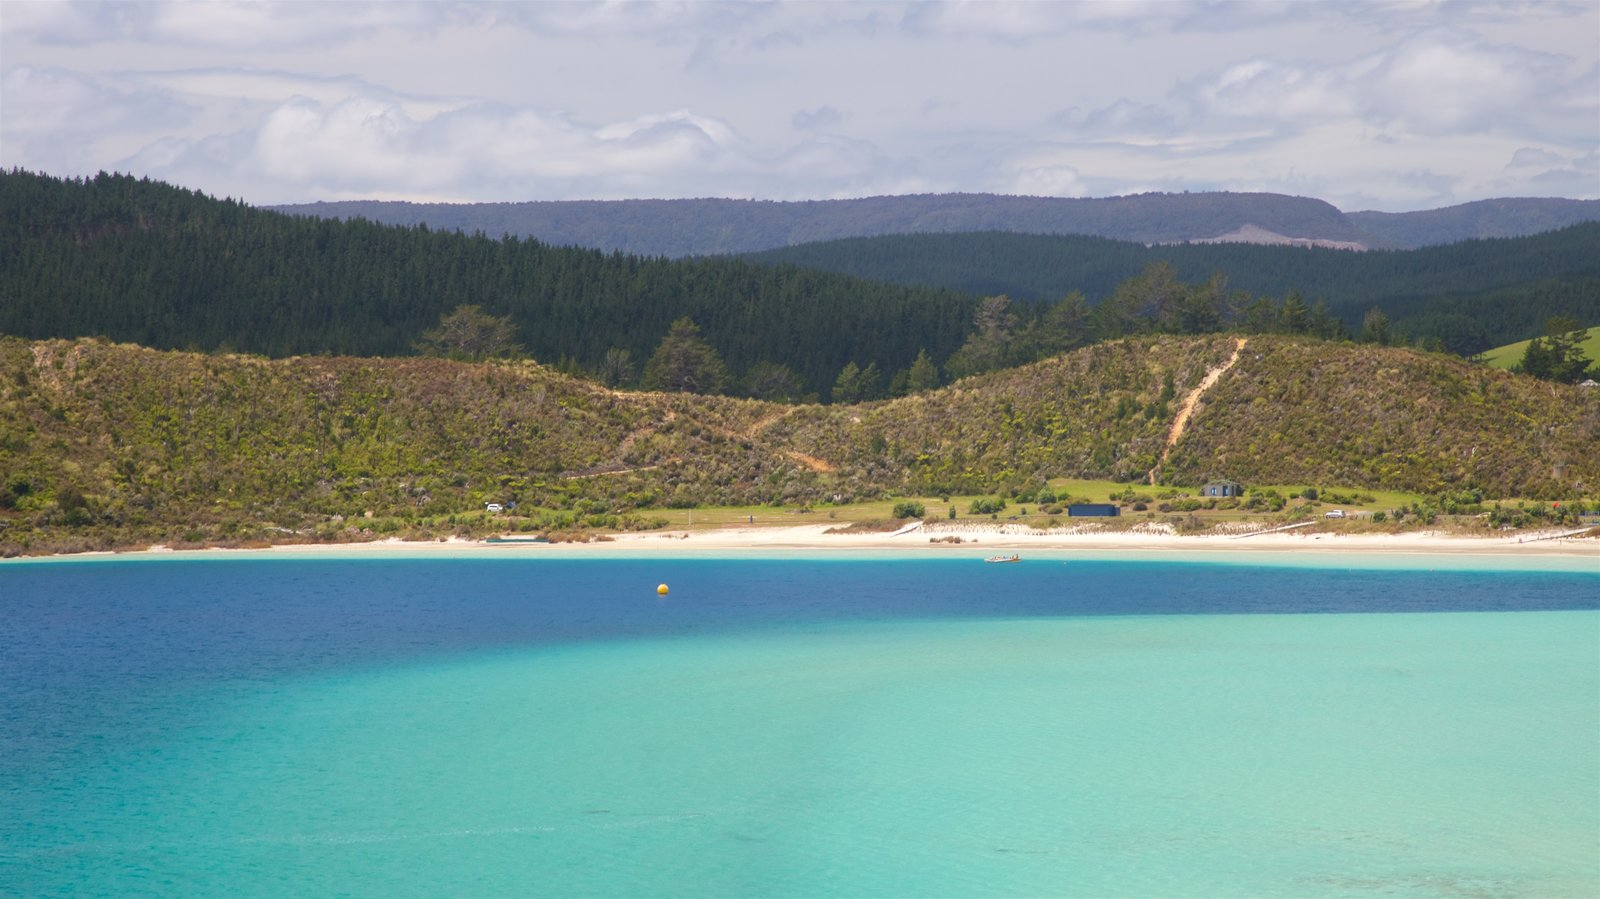 Kai Iwi Lakes showing tranquil scenes and a bay or harbor